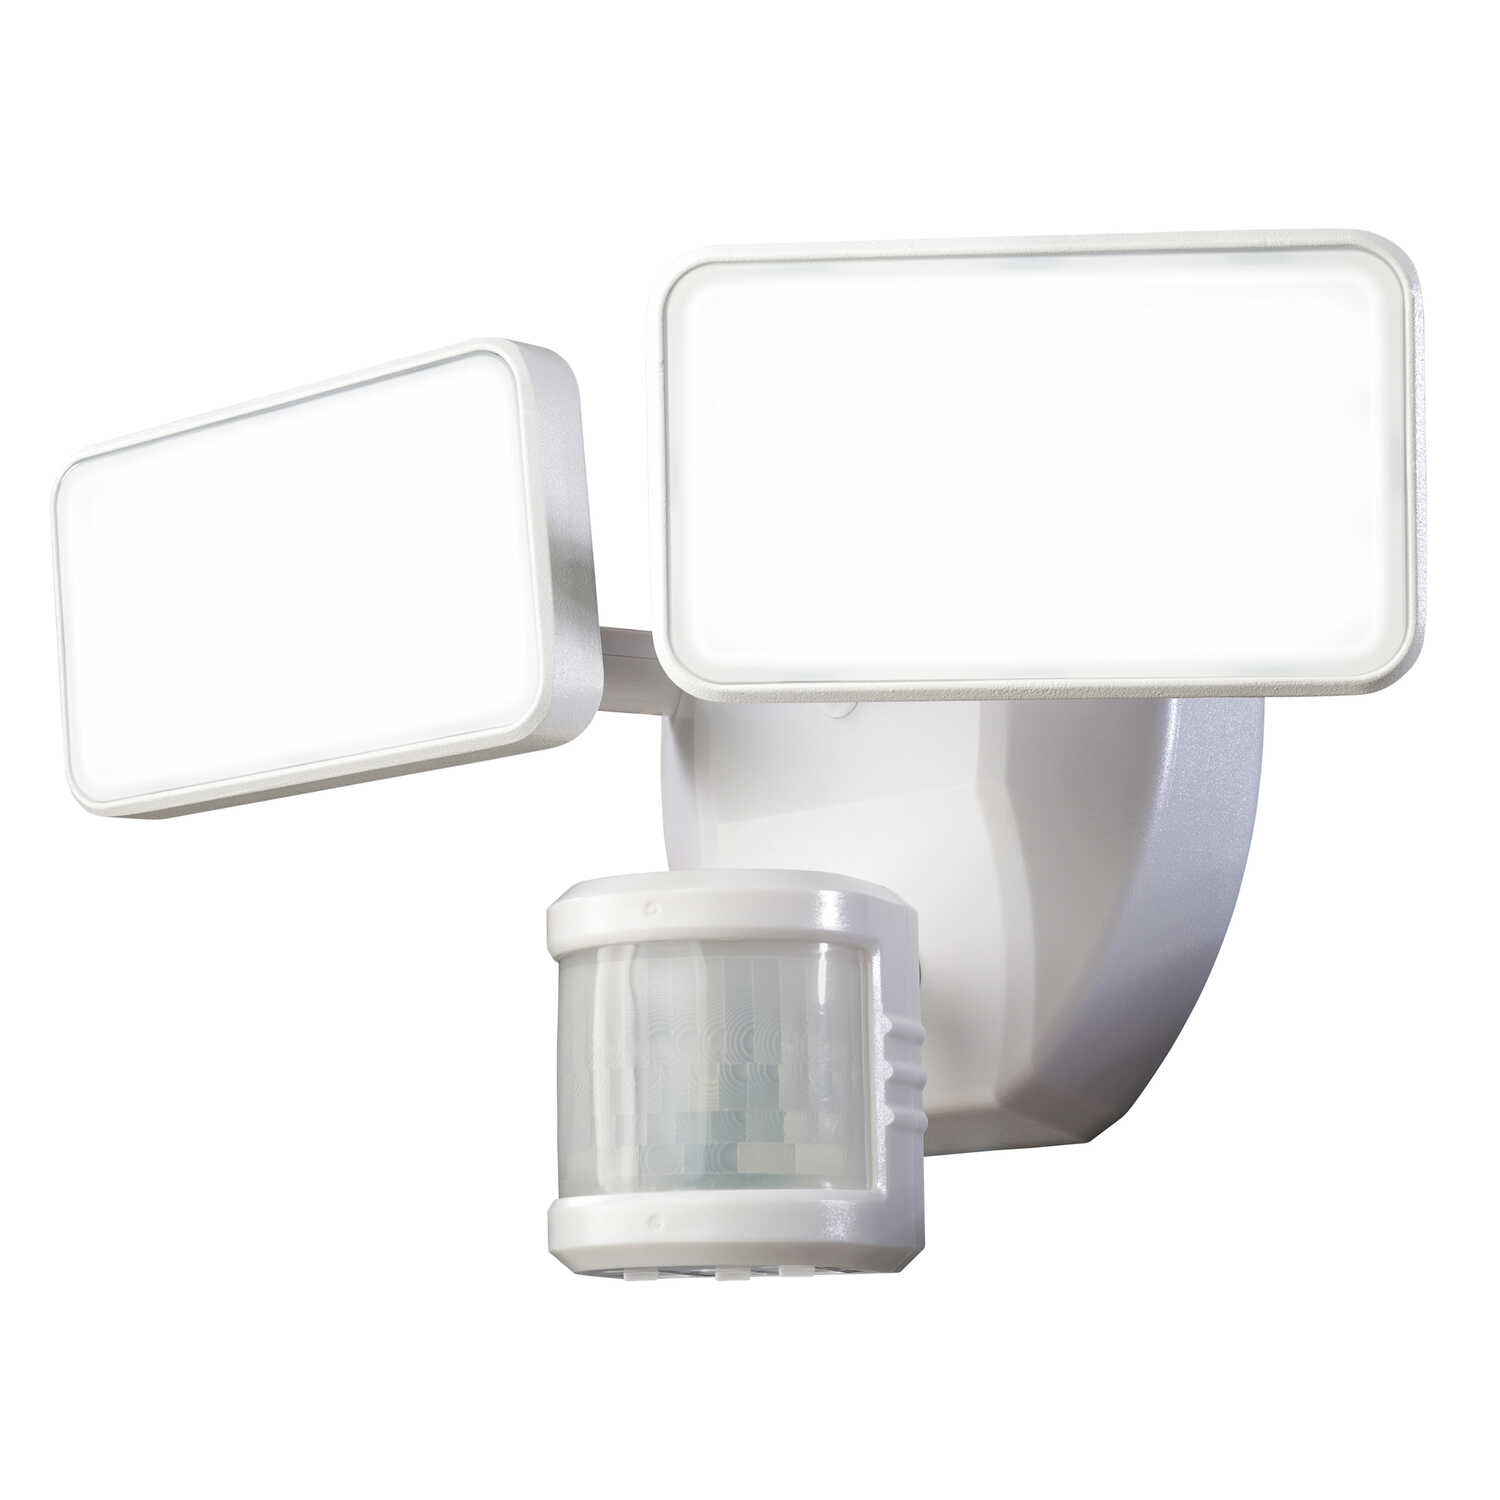 Heathco  Motion-Sensing  Hardwired  White  Security Wall Light  LED  Plastic